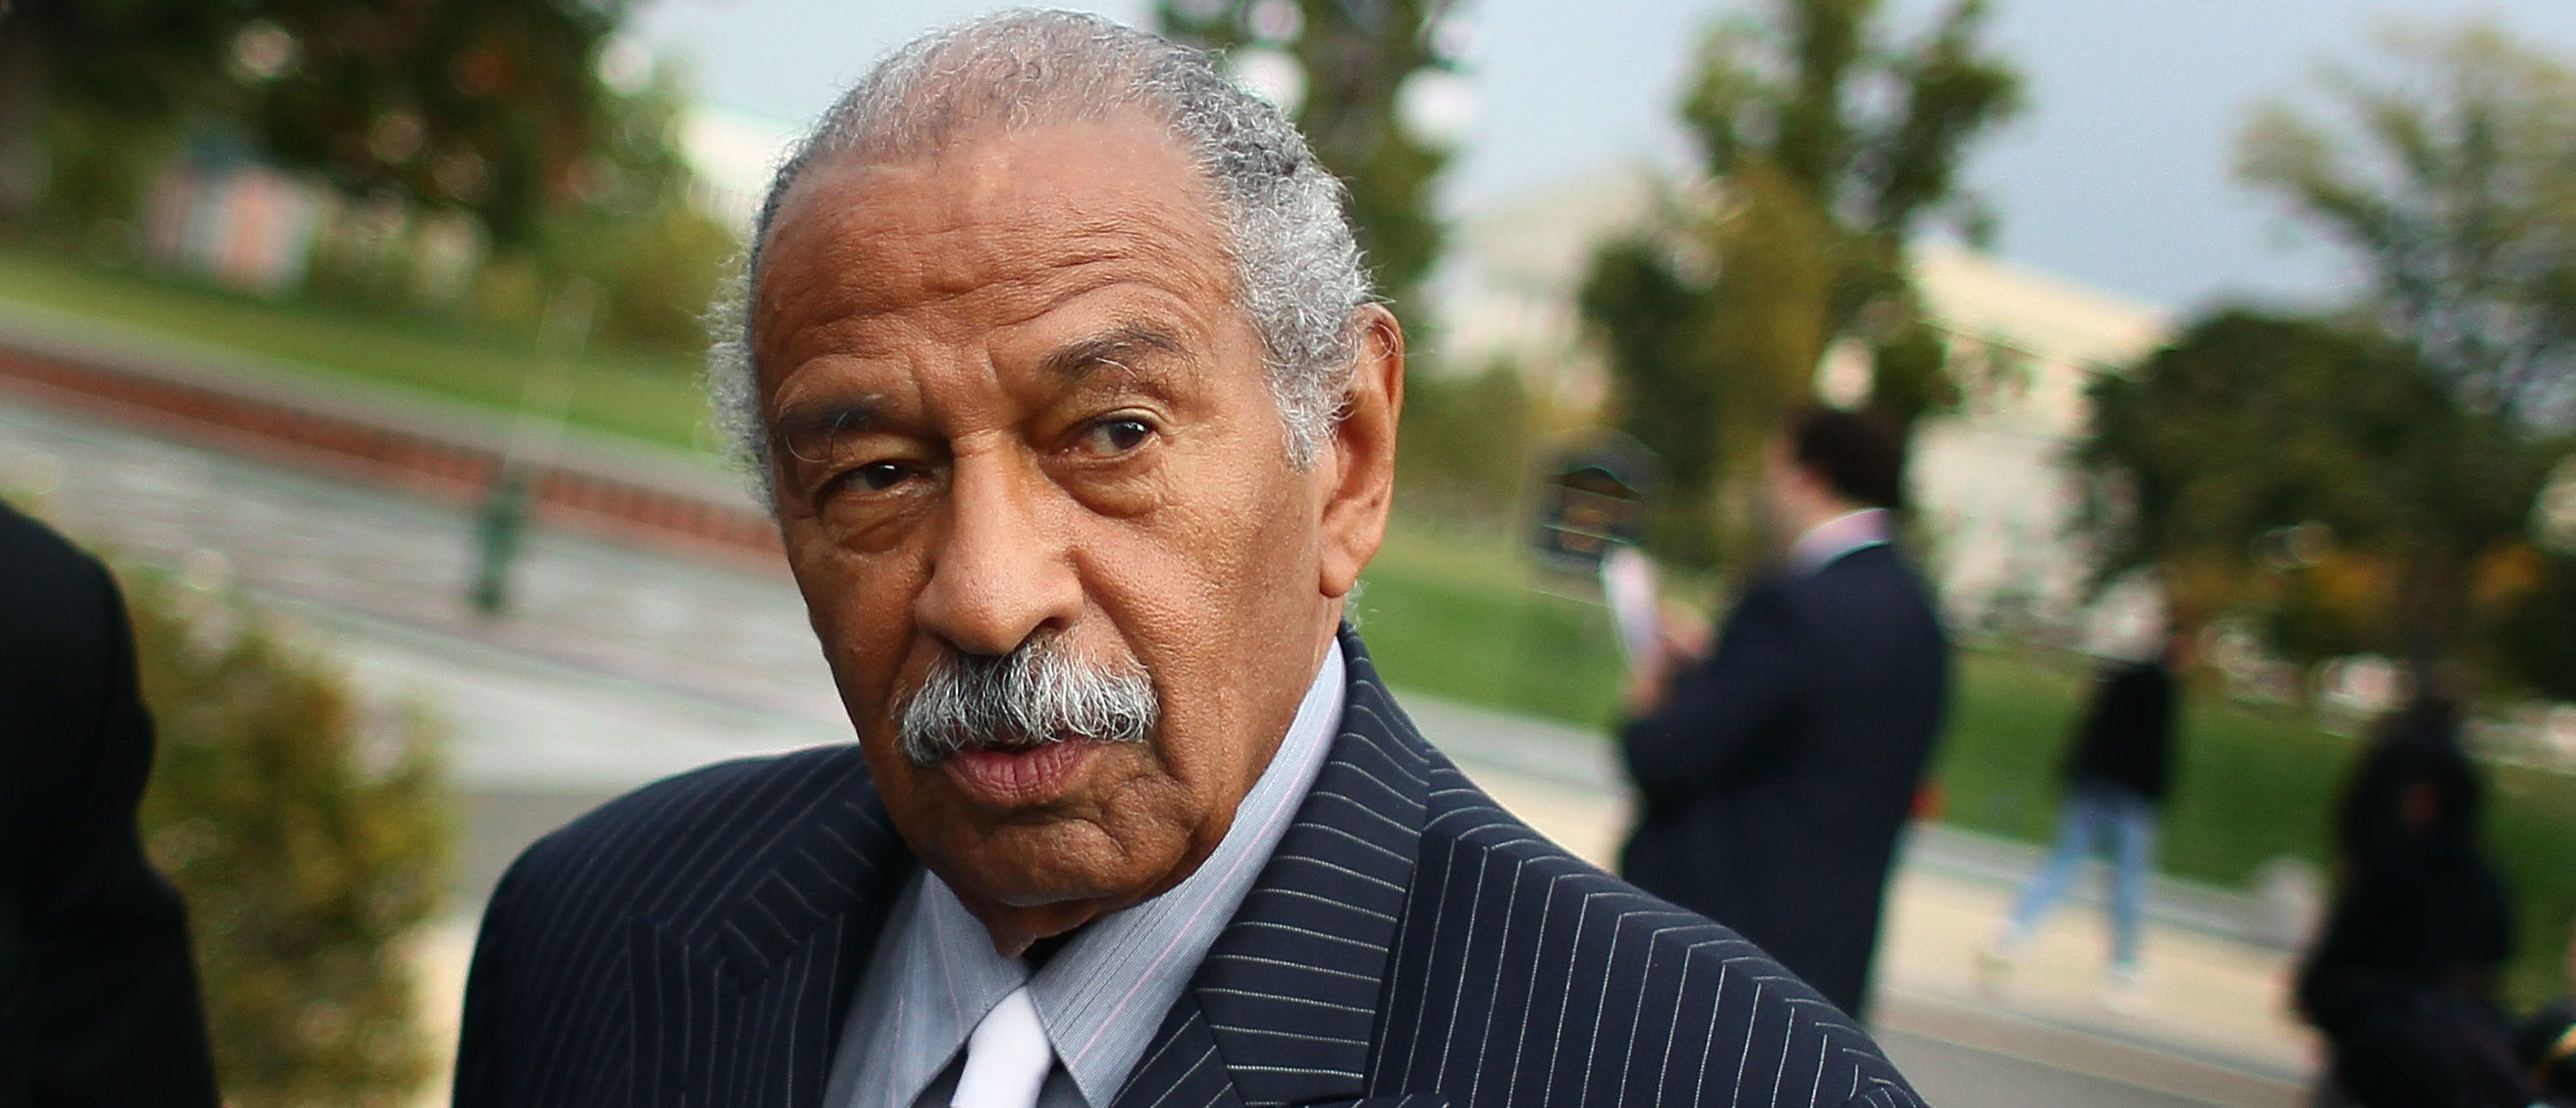 Conyers Accusers Not To Be Believed Because They're 'All White Women,' According To Dem Congressman